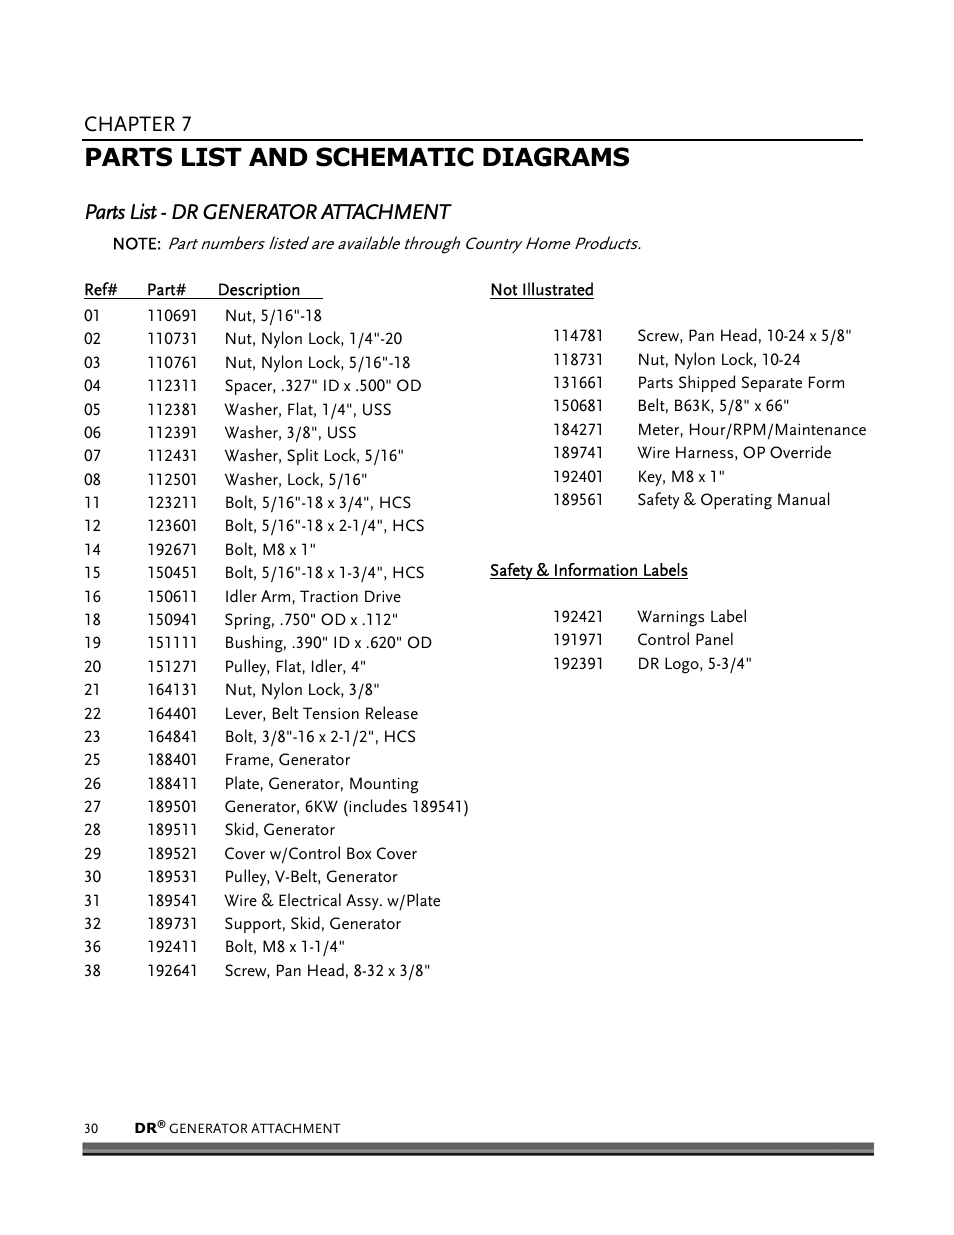 Parts List And Schematic Diagrams  Chapter 7  Parts List